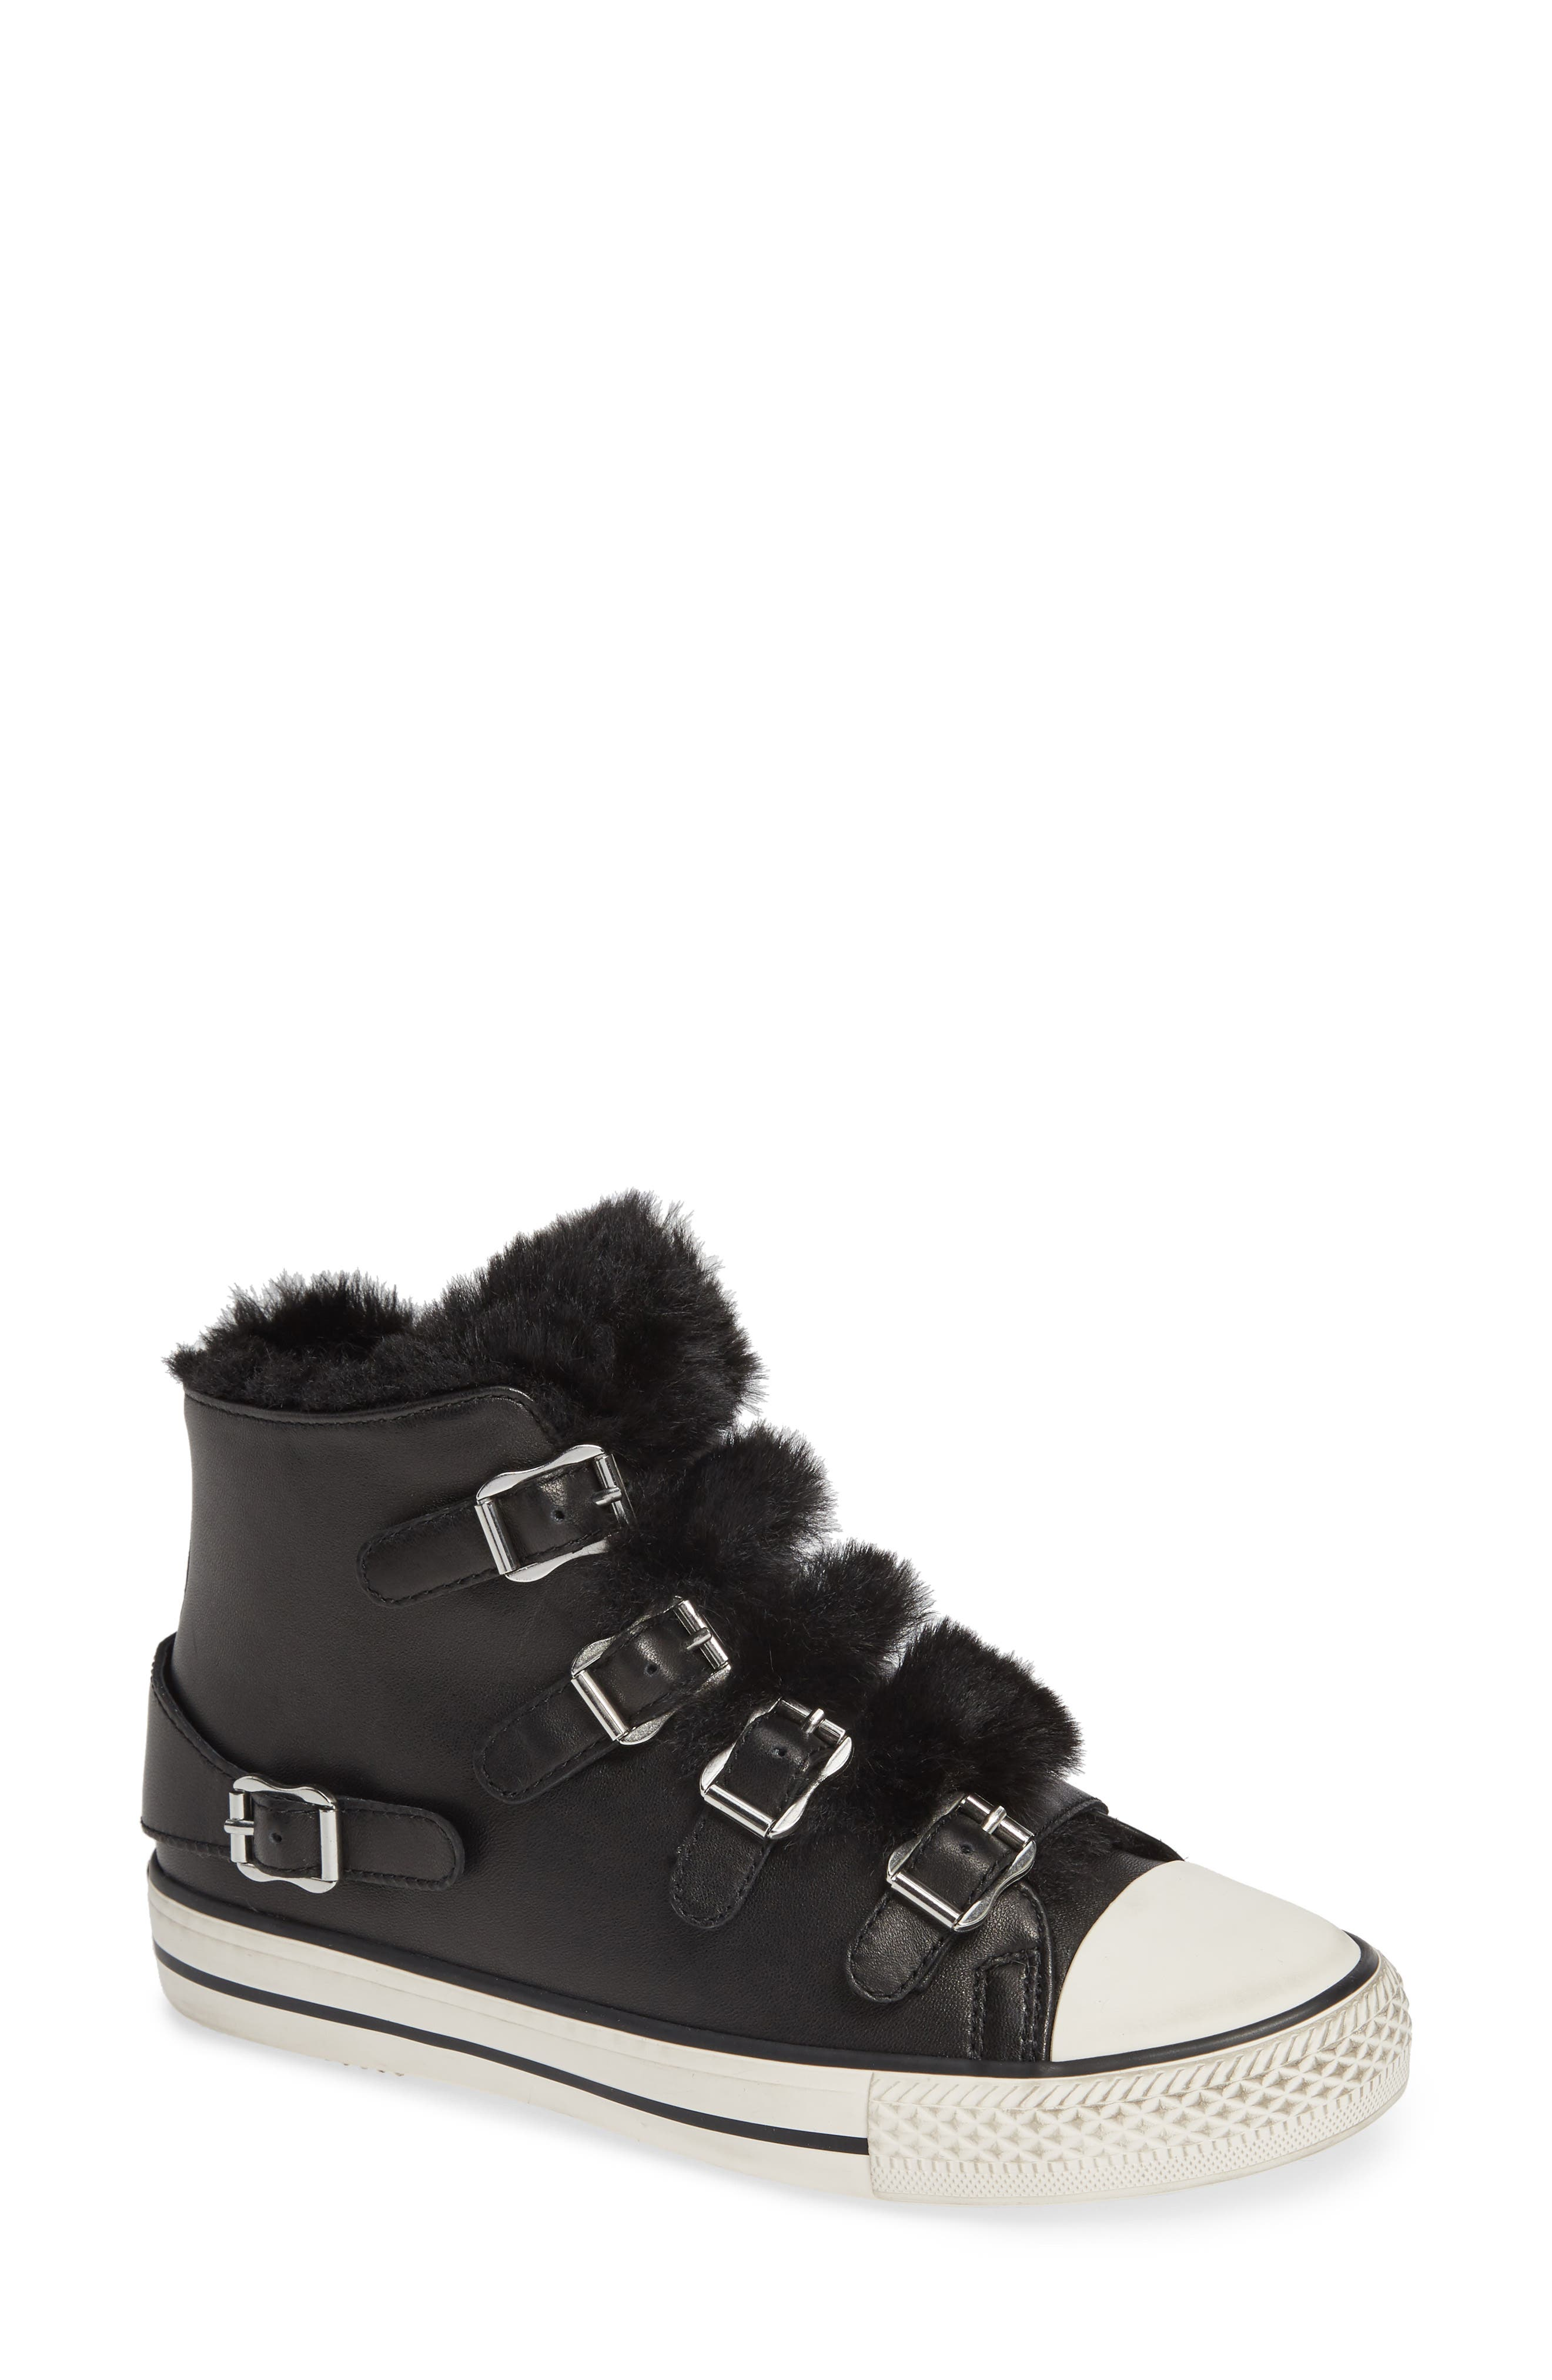 Ash Valko High Top Sneaker Black